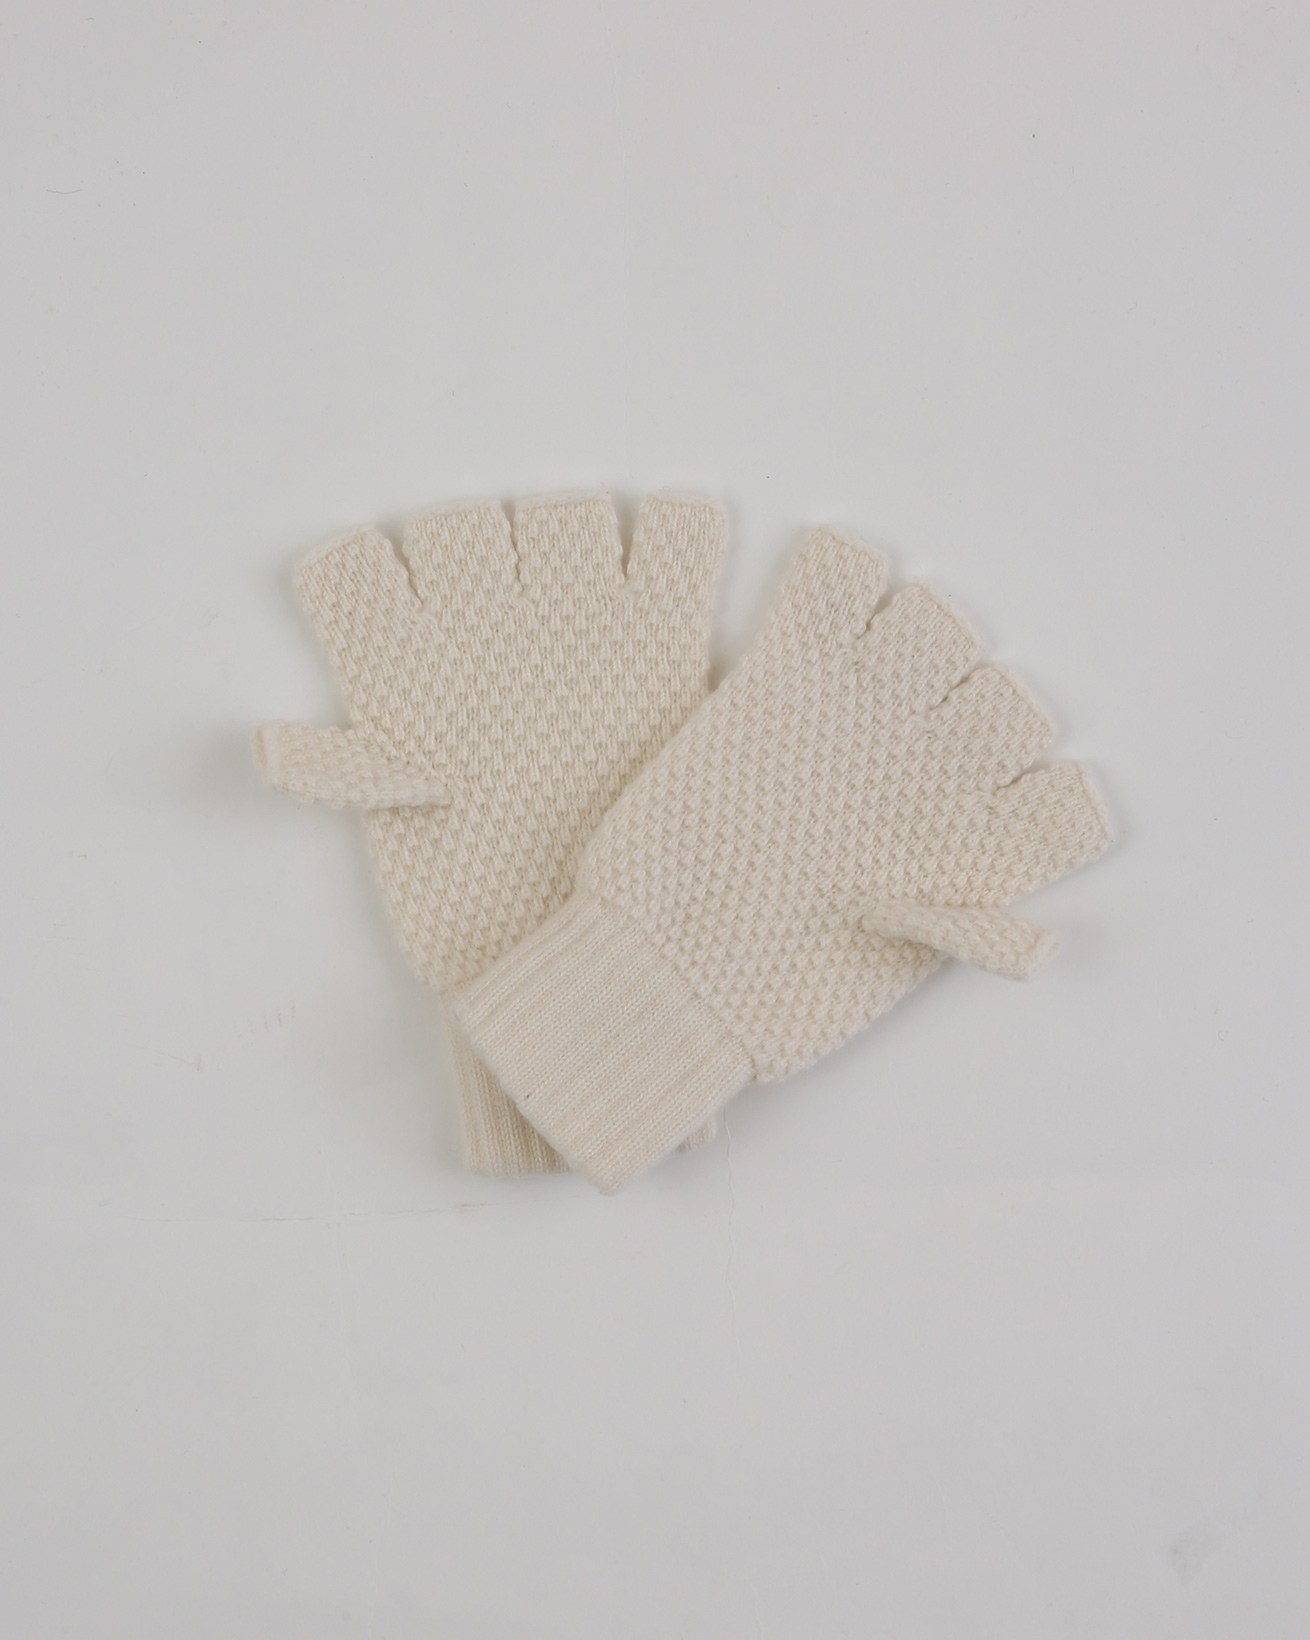 Ladies Cashmere Moss Stitch Fingerless gloves - One Size - Ivory - 1942